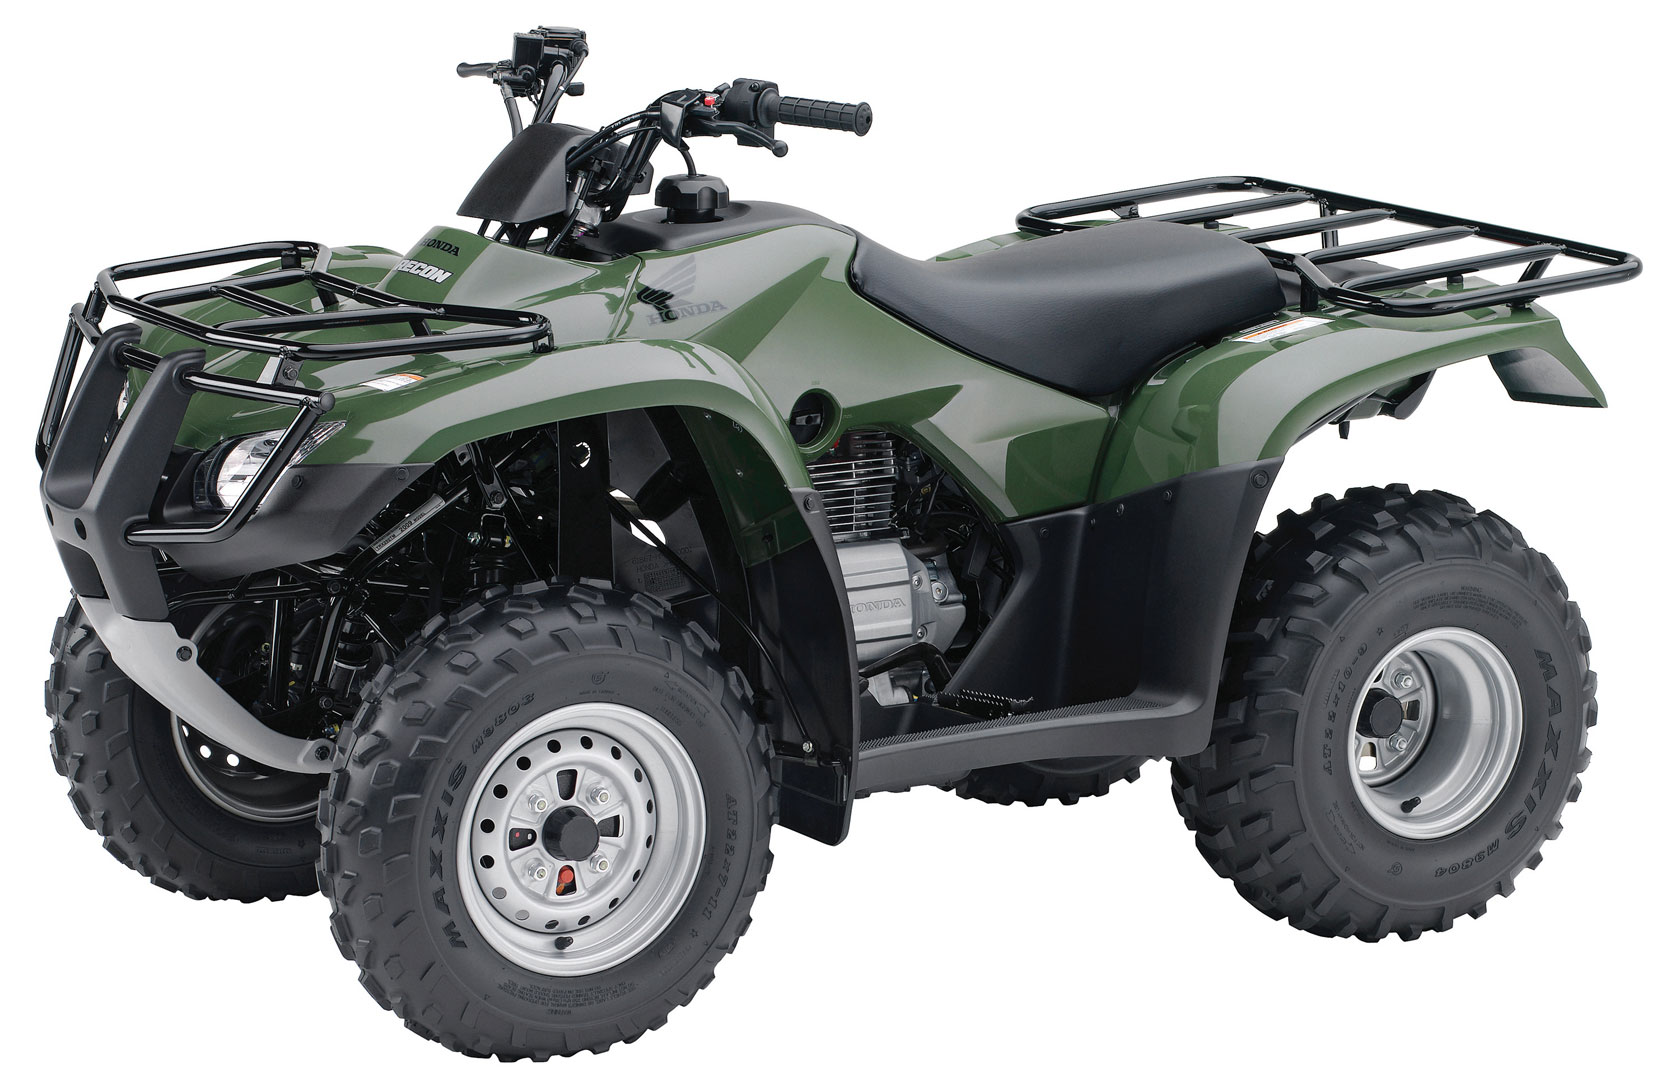 Honda Fourtrax Rancher Trx420tm Specs 2011 2012